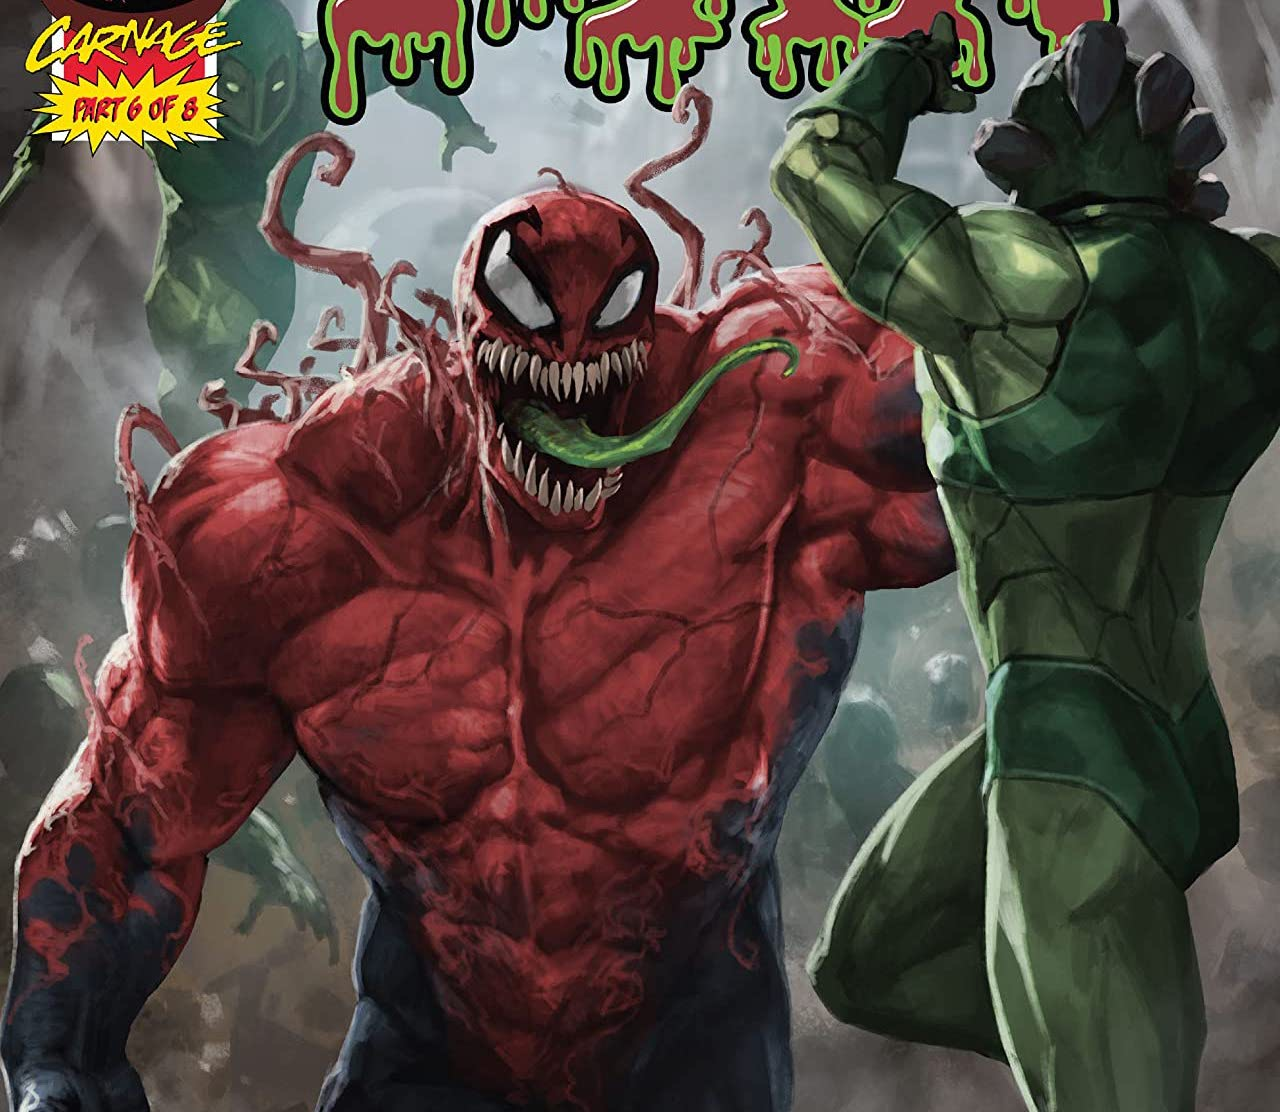 'Extreme Carnage: Toxin' #1 features a heroic Toxin